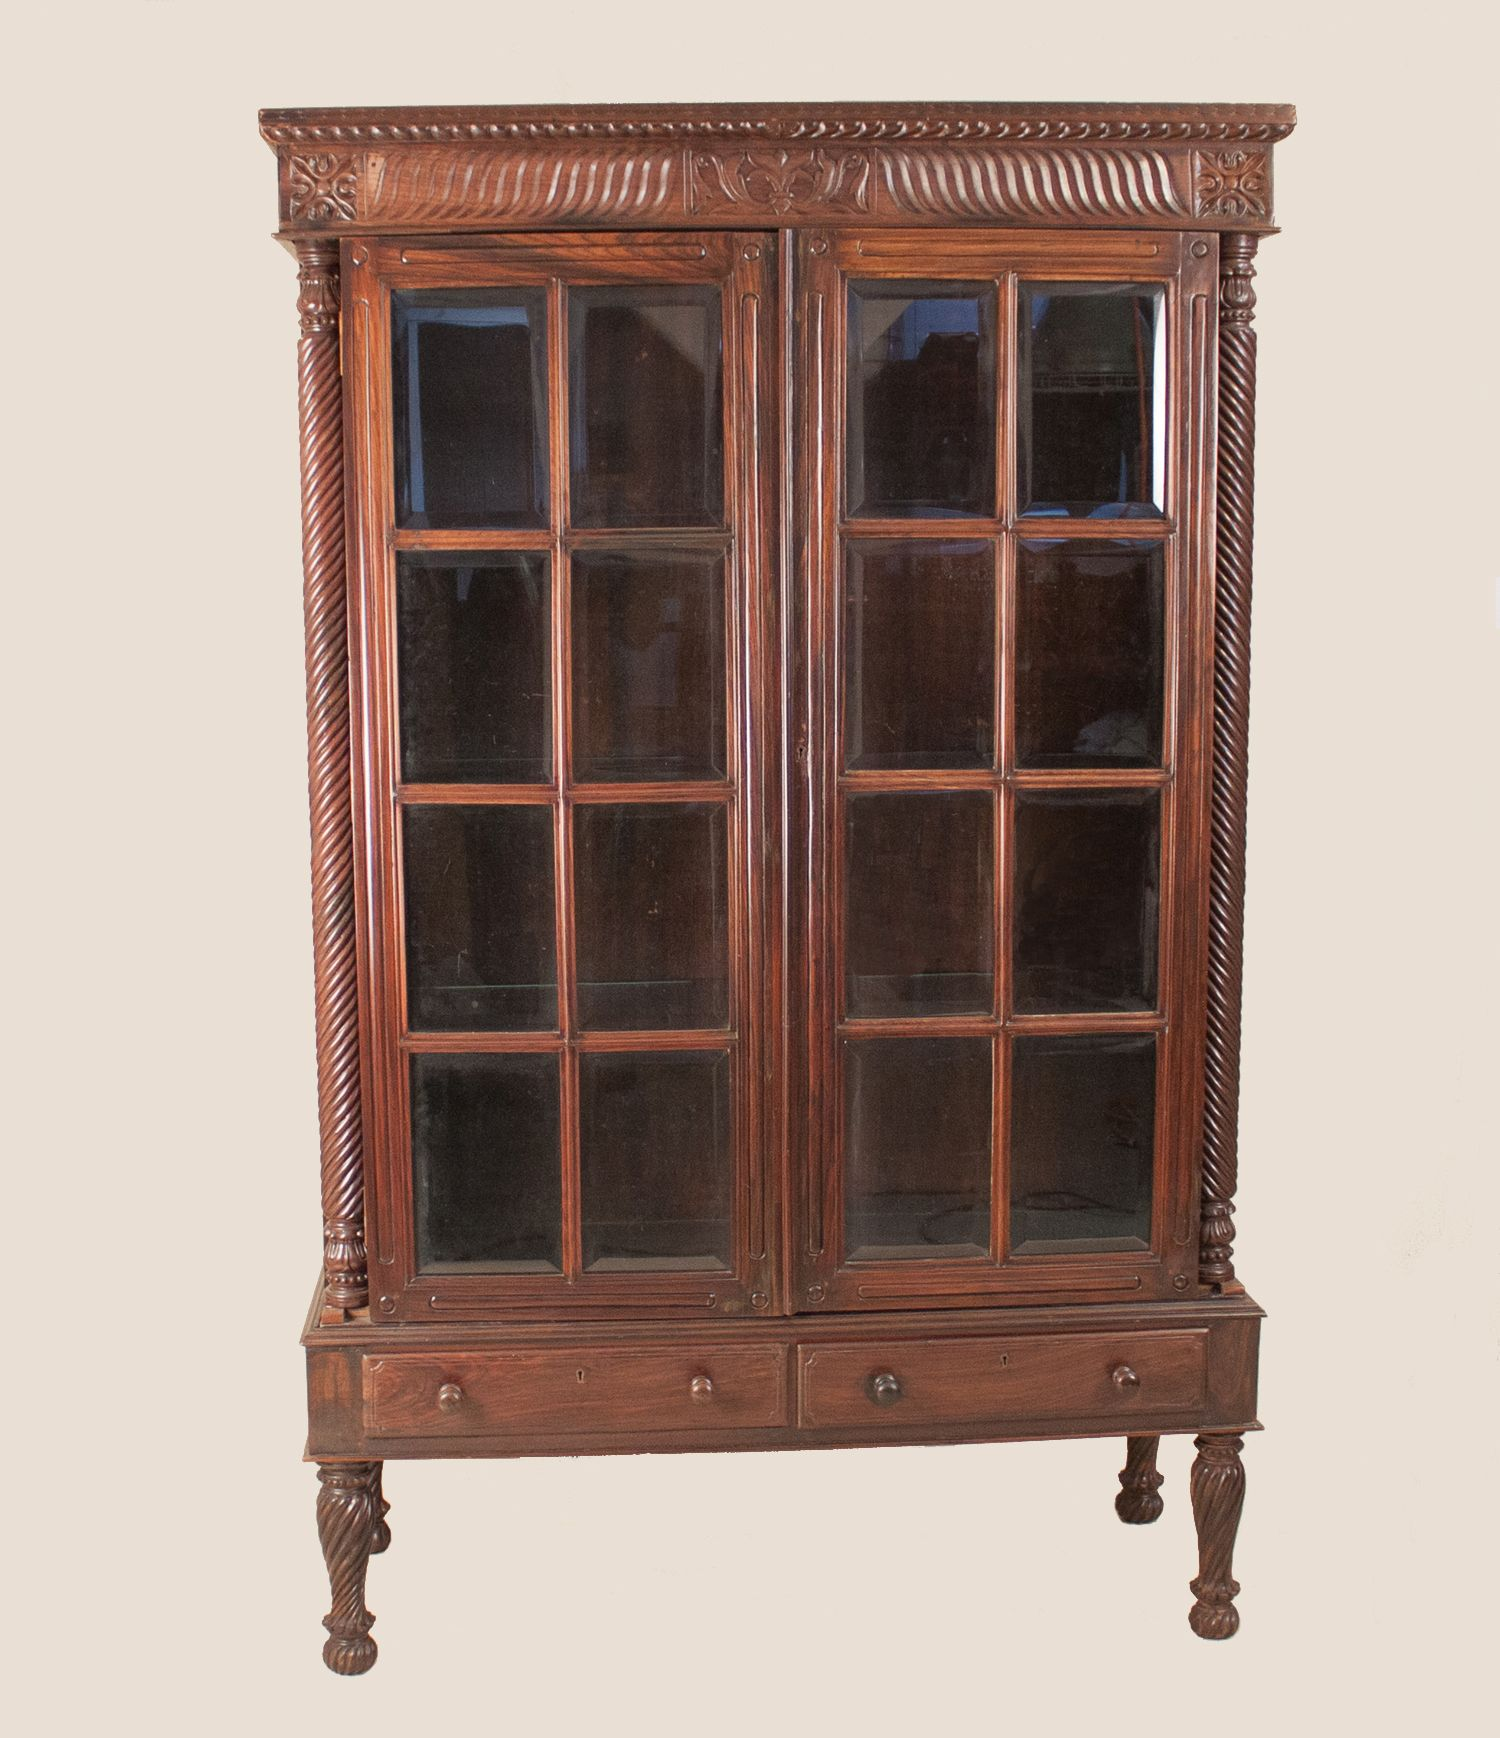 glass form furniture baroquisme british colonial rosewood cabinet with glass doors carved display or book case